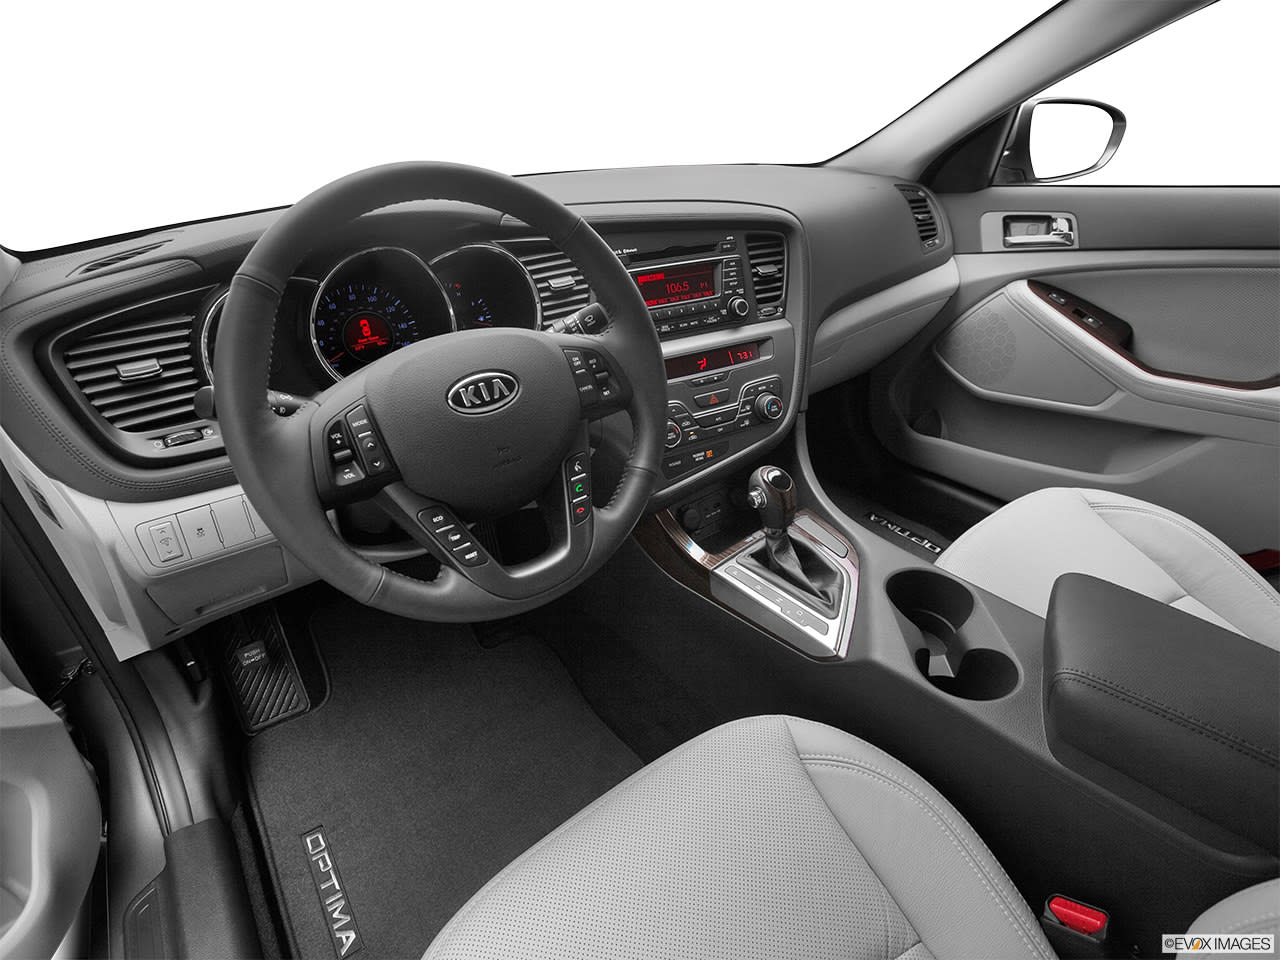 kia optima 2012 interior